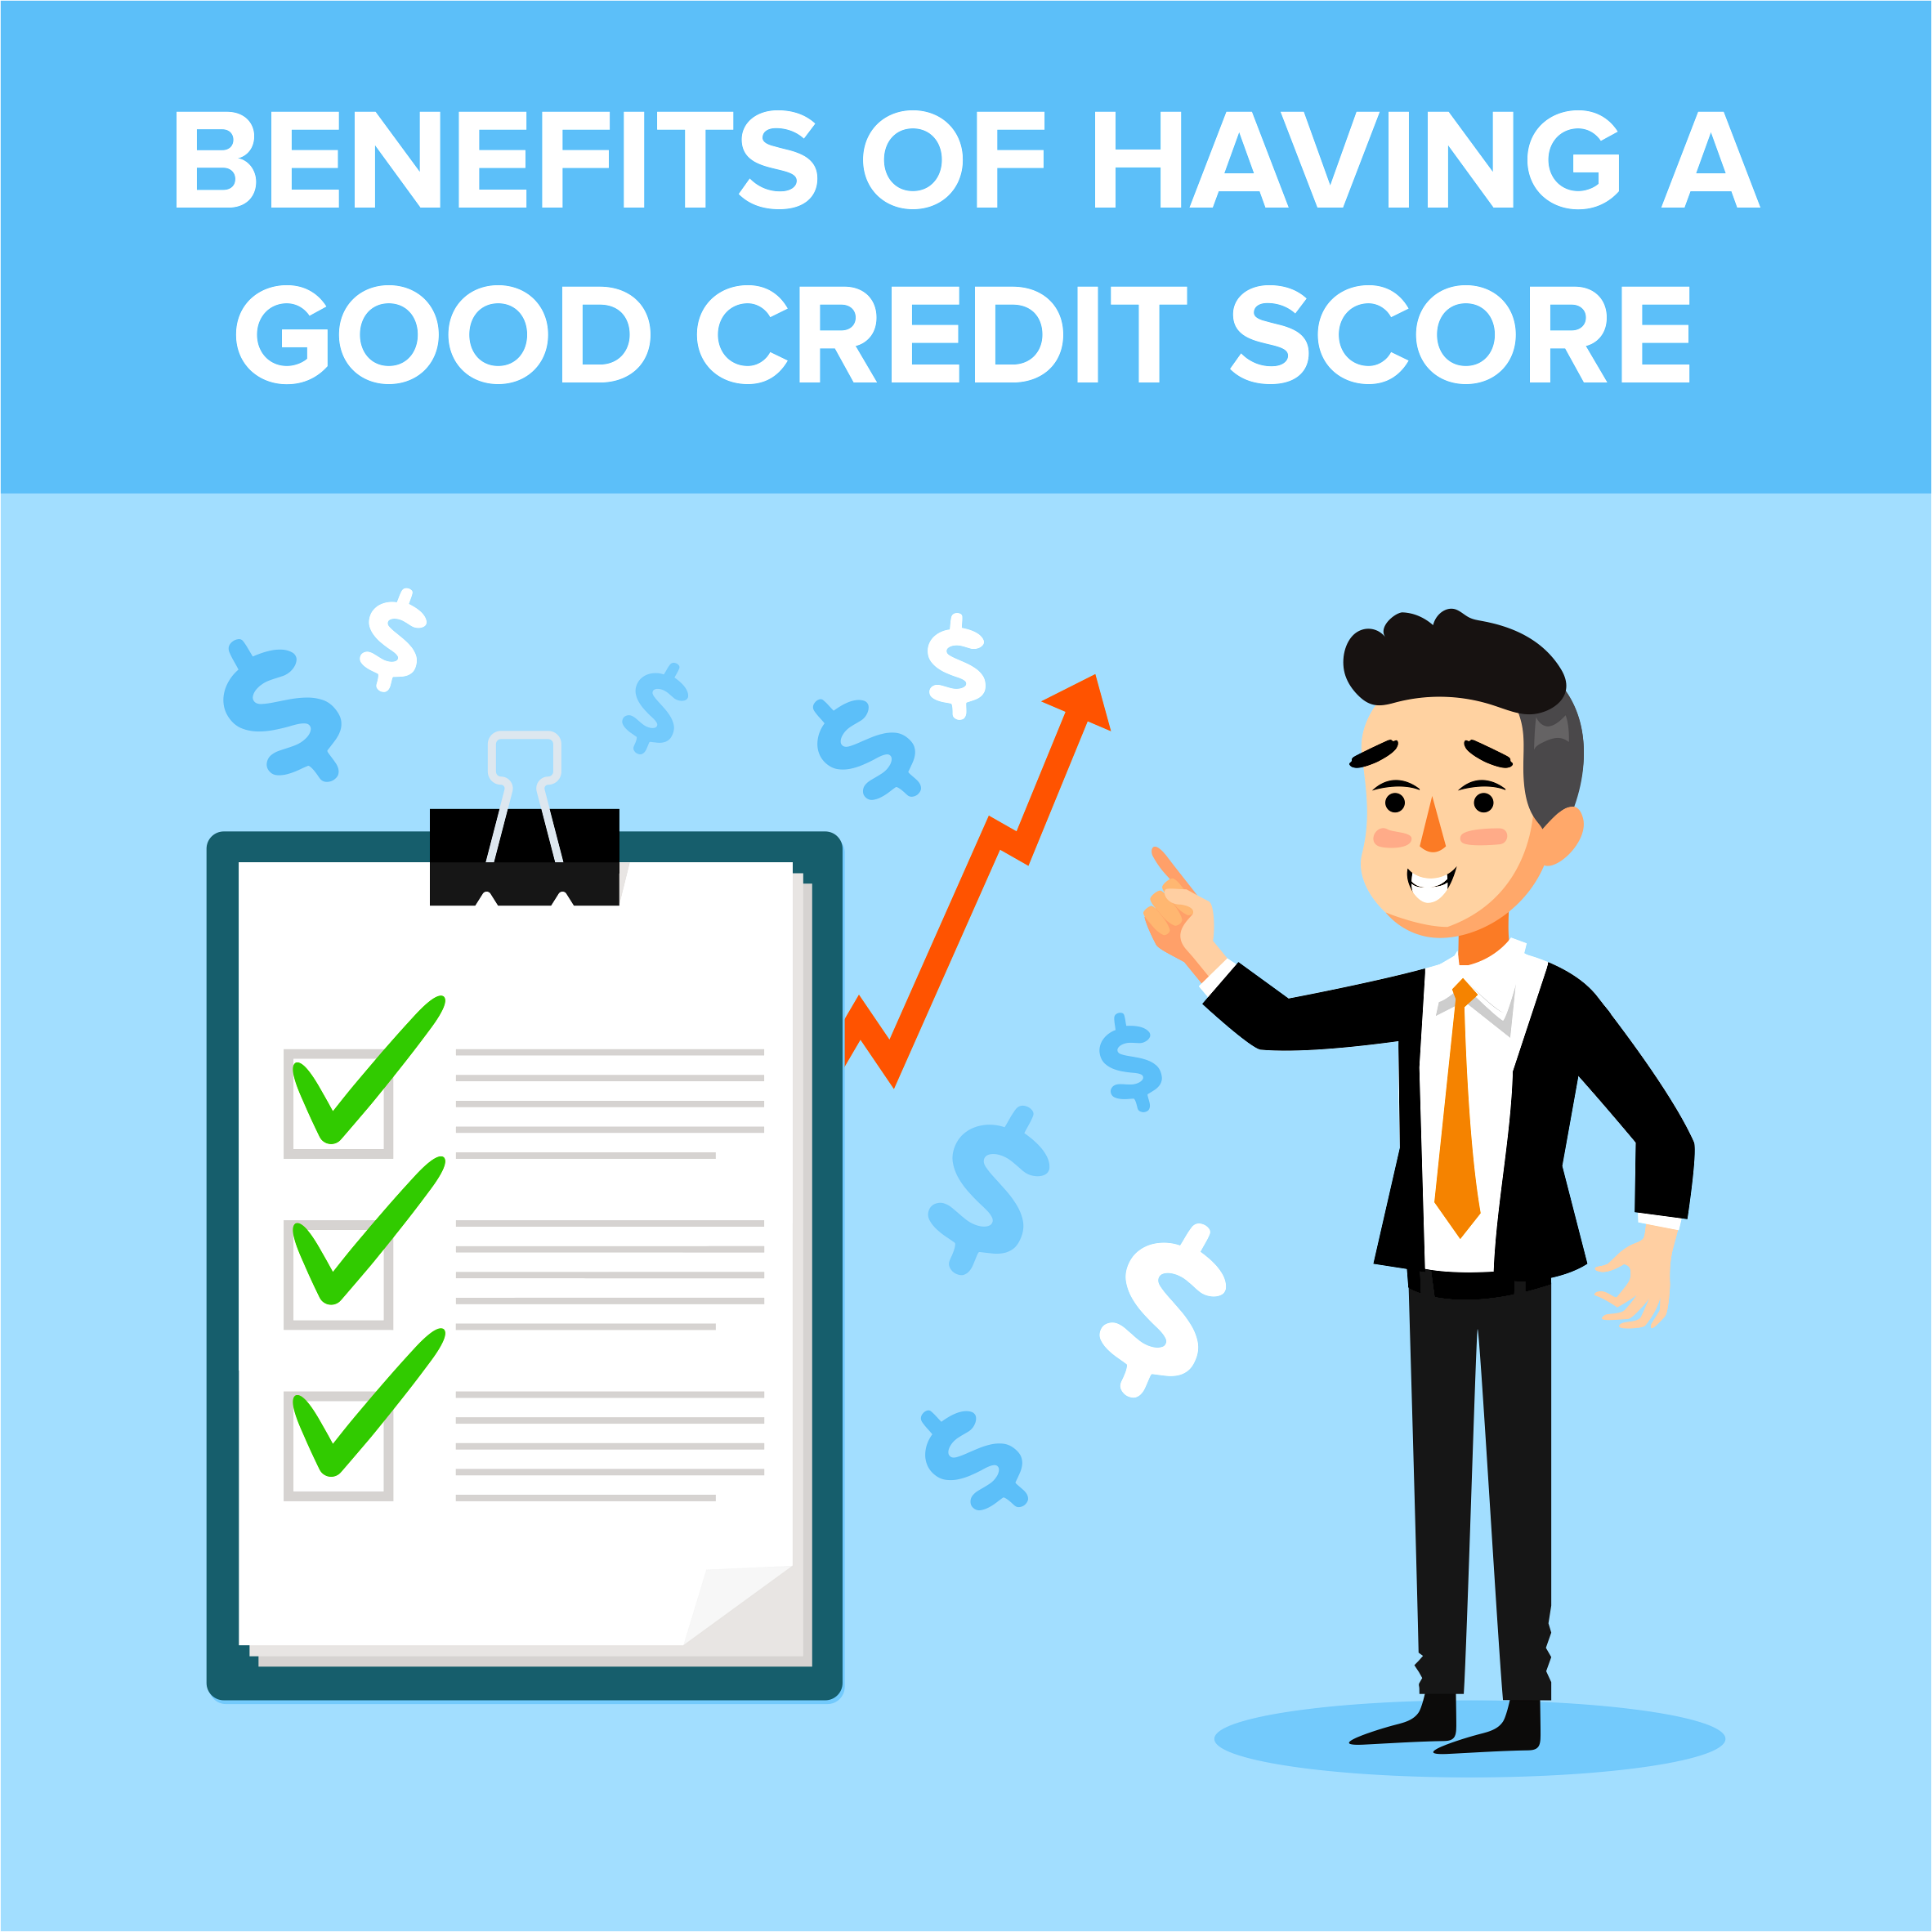 Benefits of Having a Good Credit Score